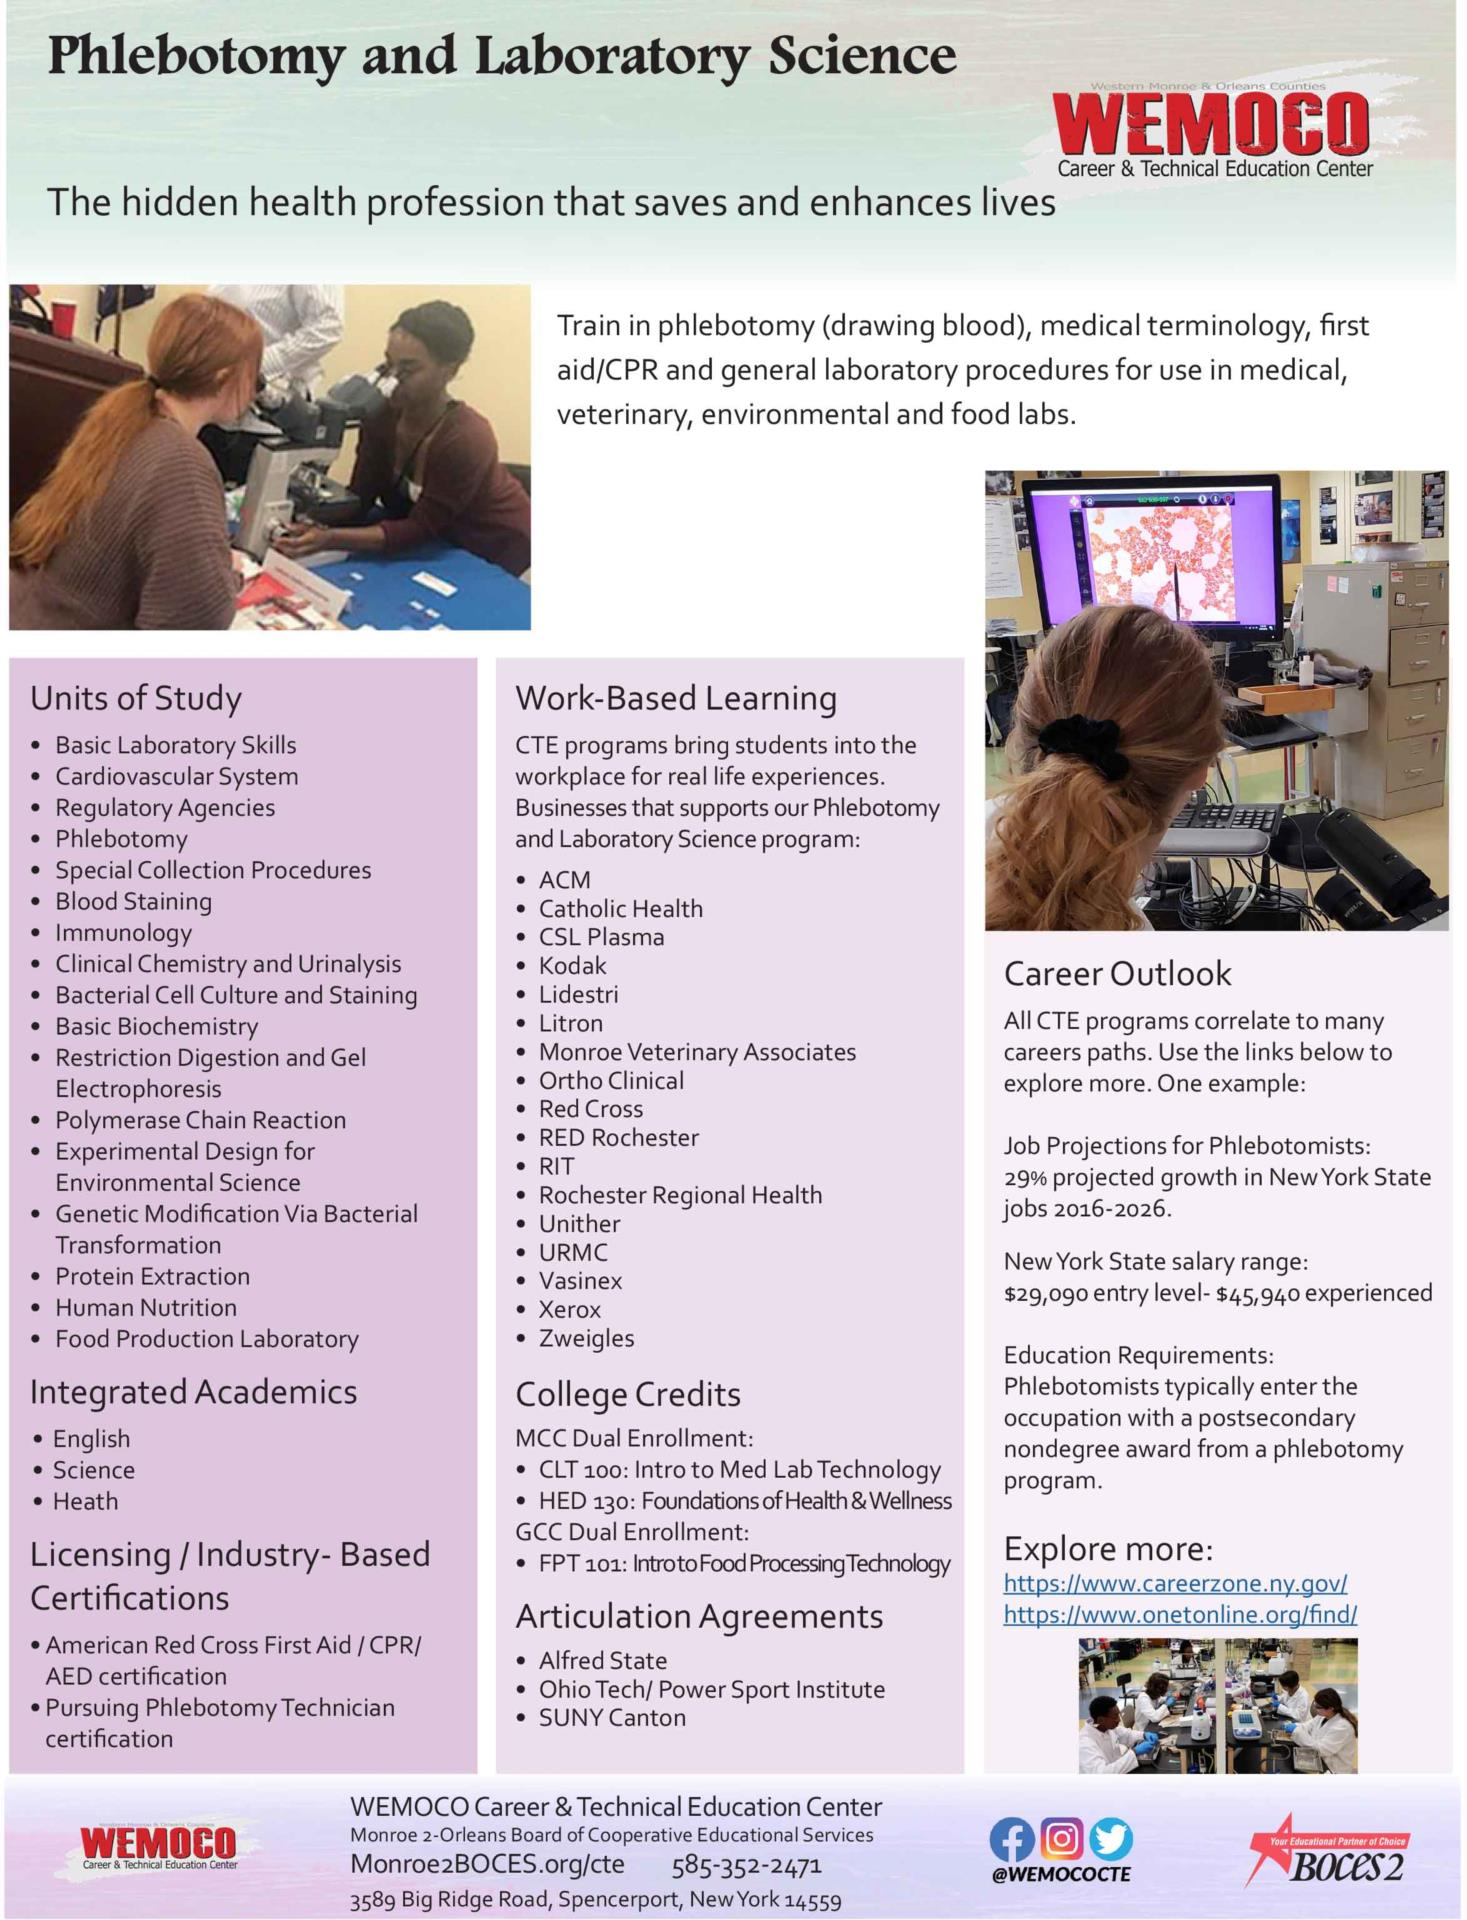 Download a PDF overview of the Phlebotomy and Laboratory Science program information